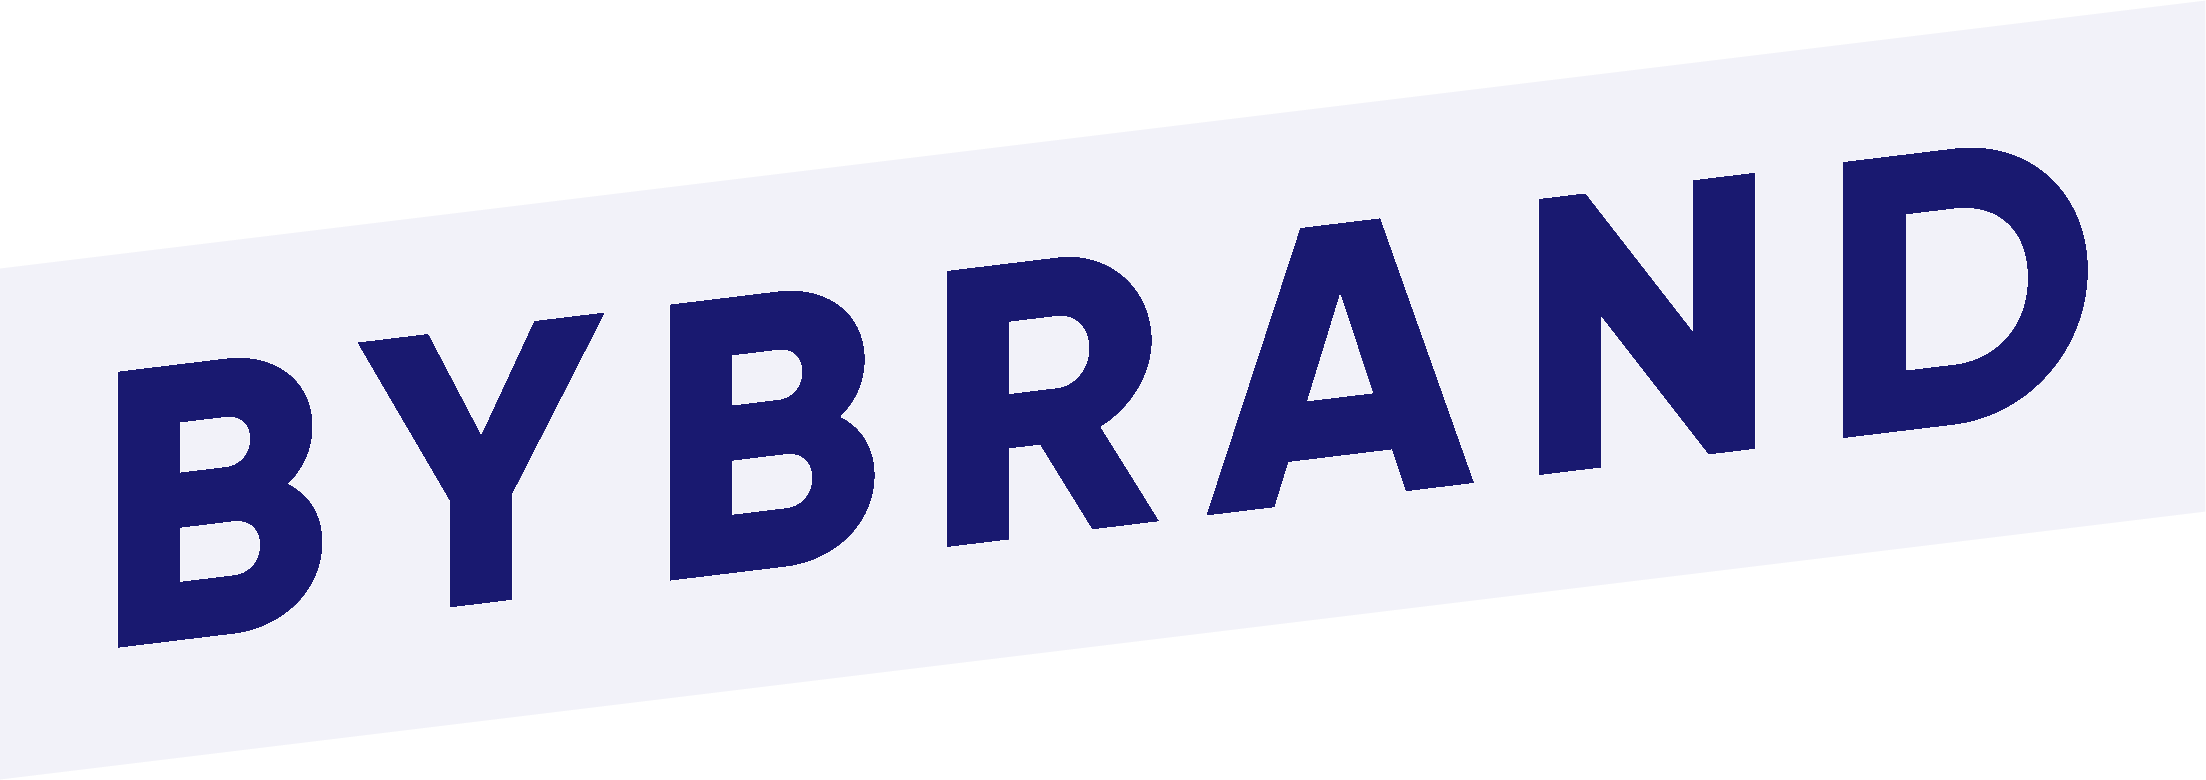 Bybrand transparent logo